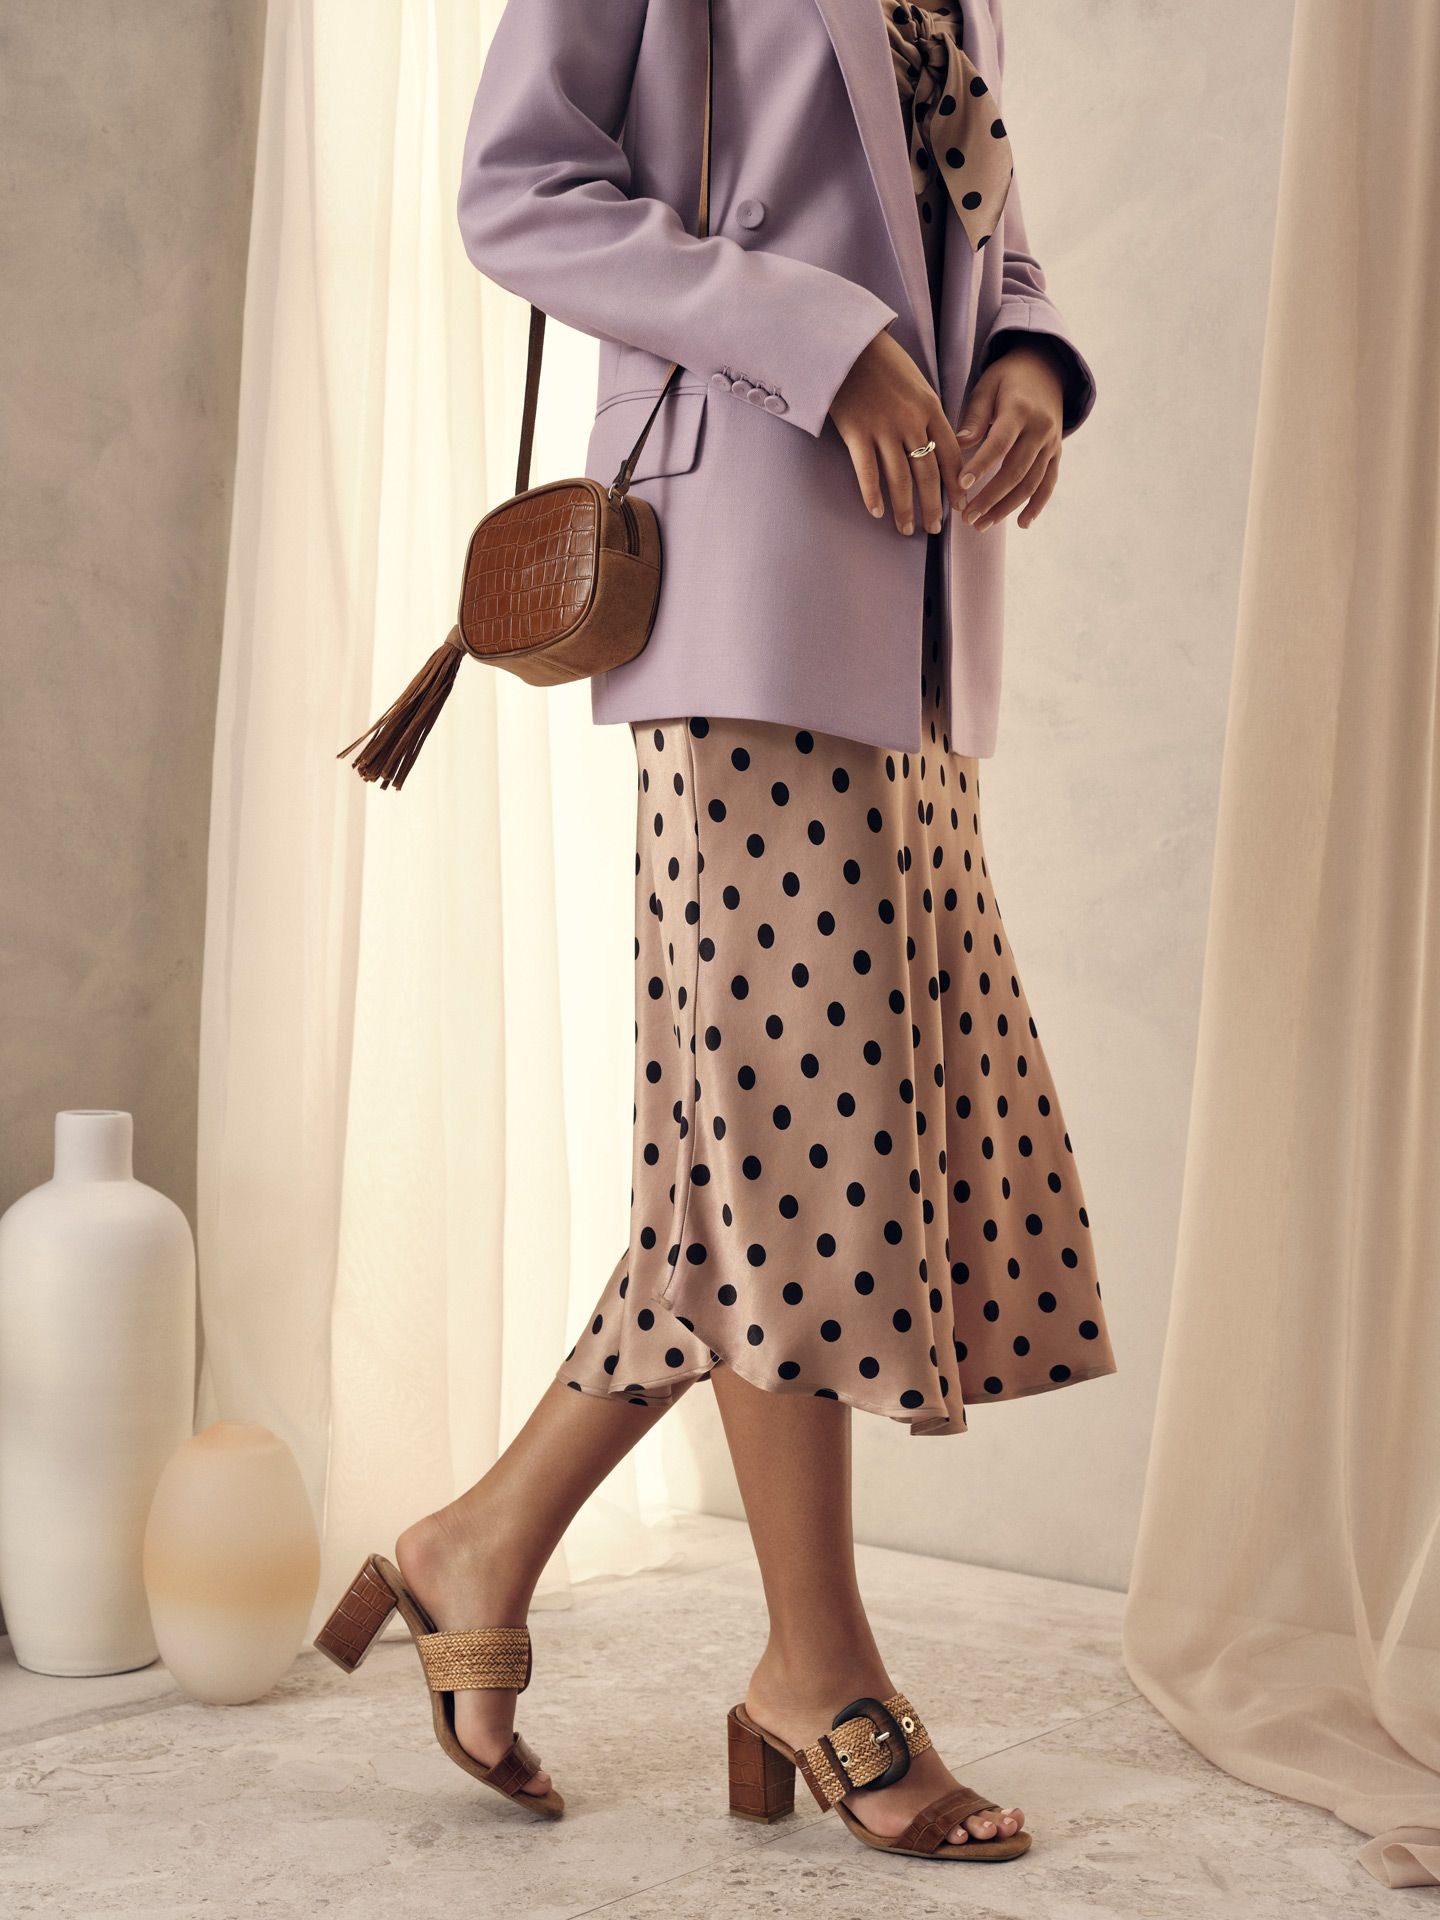 model of colour wearing polka dot skirt and light purple jacket with open-toed summer shoes for Jean-Paul Fortin summer-spring collection photographed by Maxyme G Delisle with artistic direction, conception and set design by Studio TB